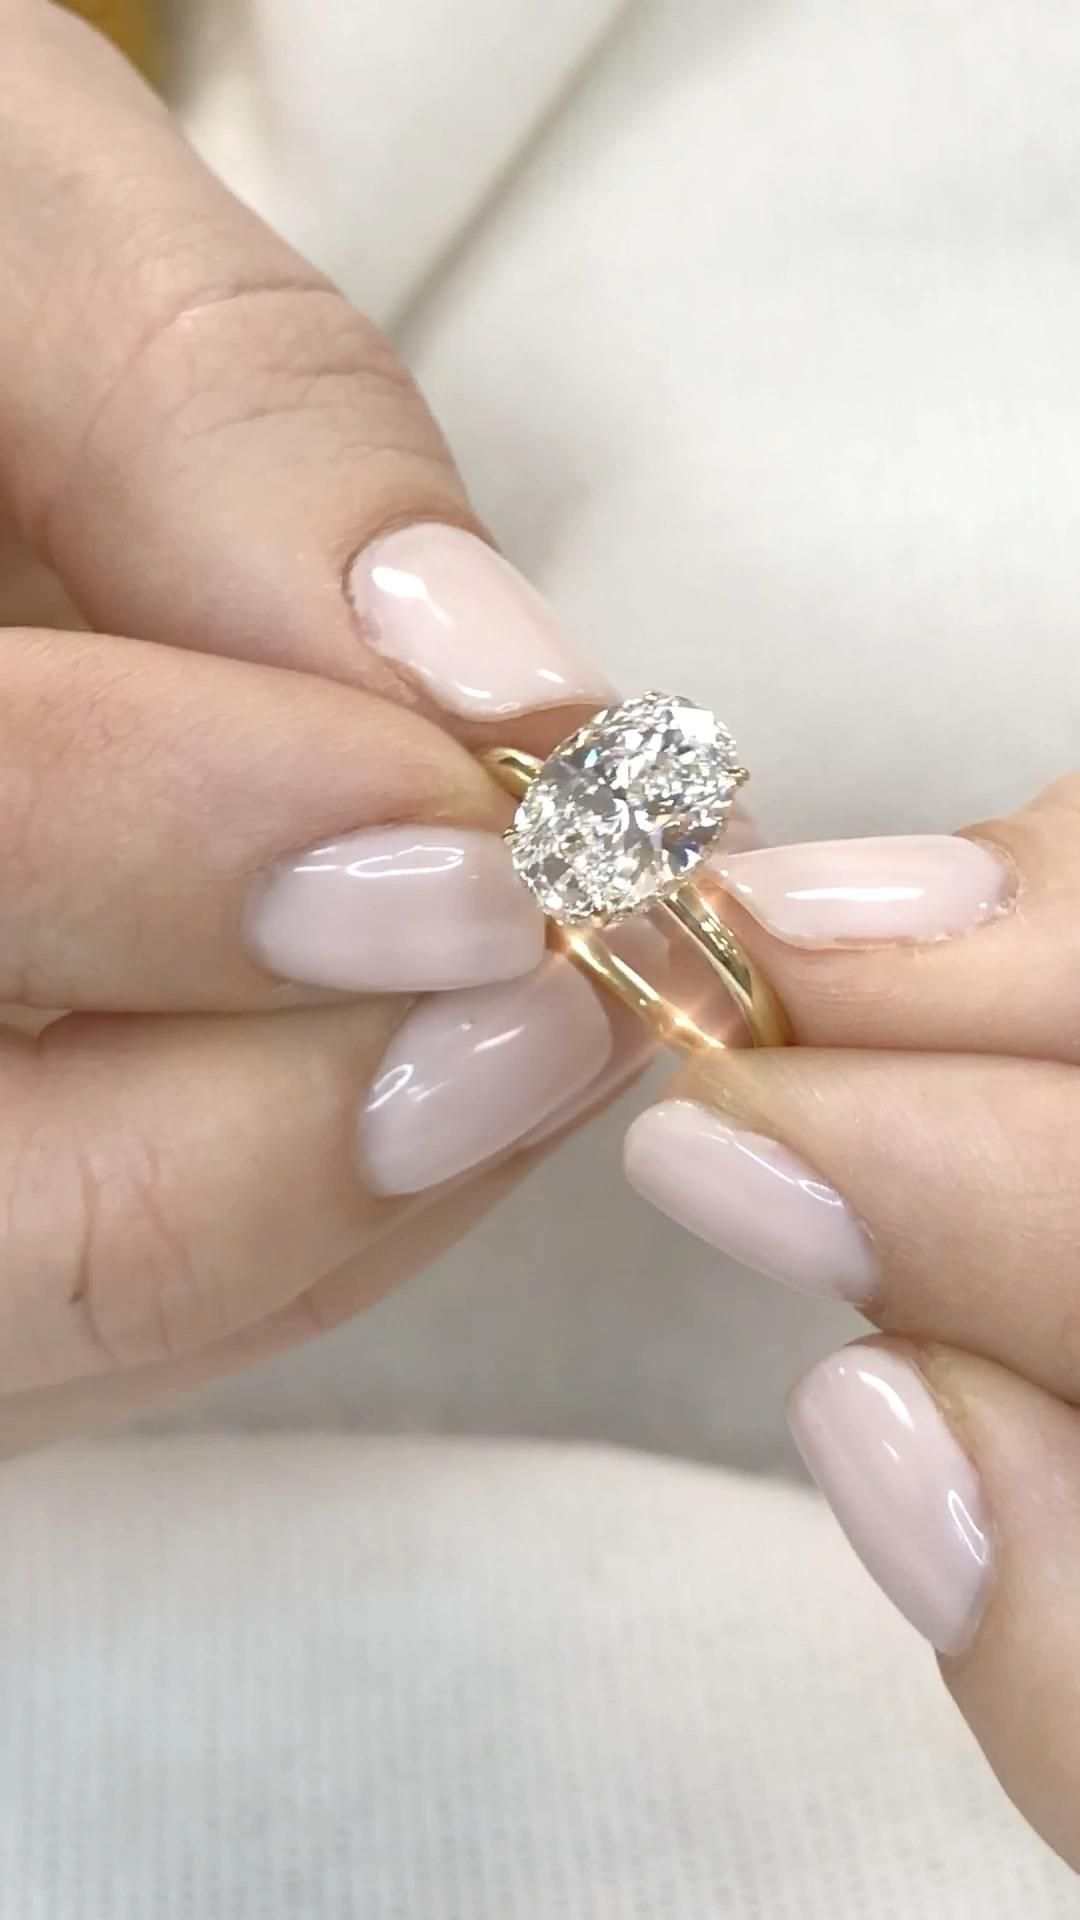 Engagement Rings – Designed to a Higher Standard. Create your own diamond engagement ring by Ascot Diamonds. #ascotdiamonds #ascotdiamondsatlanta #engagementring